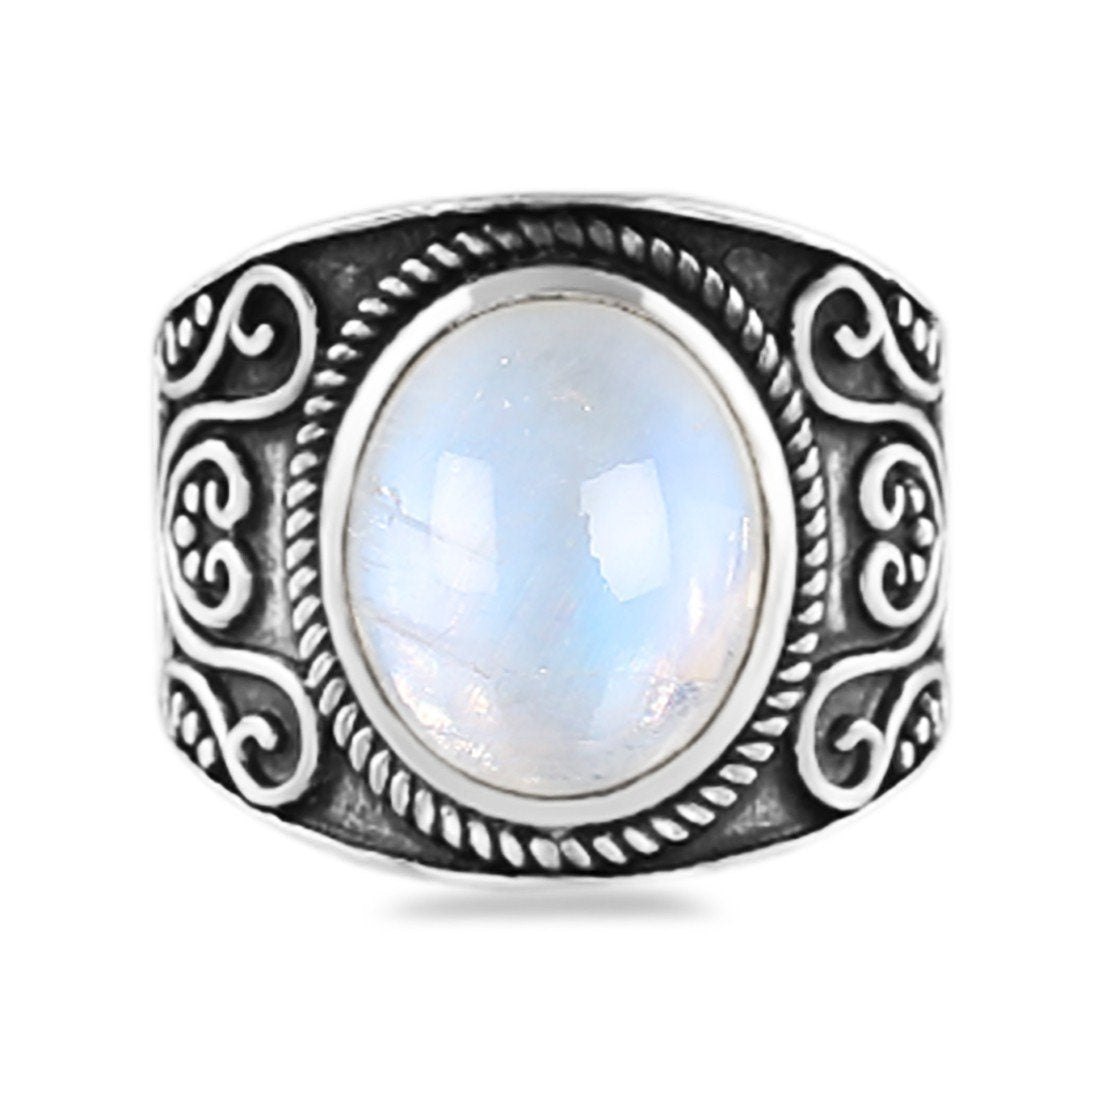 Moonstone Ring-Cheeky Moon Sale Item 925 SILVER & MOONSTONE